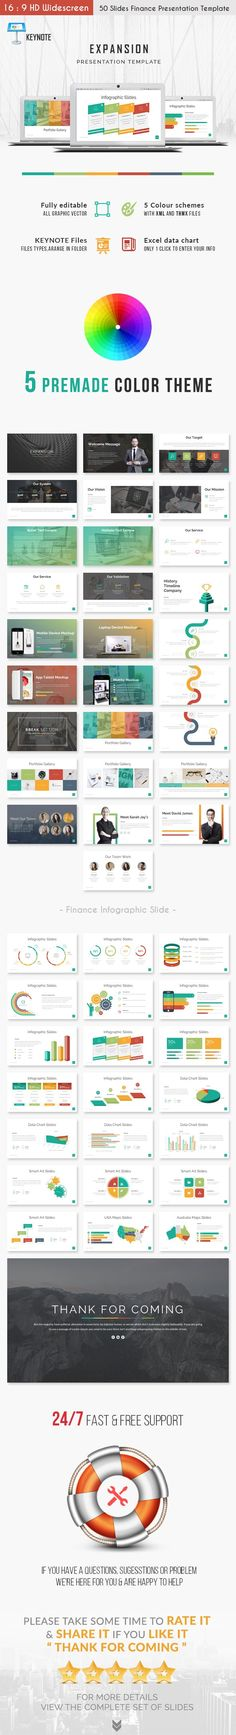 Buy Expansion - Finance Powerpoint Presentation Template by puricreative on GraphicRiver. Expansion is a finance Powerpoint Presentation Template. It is specially made for you: business analyst, market analy. Powerpoint Presentation Templates, Keynote Template, Fb Banner, Chart Infographic, Data Charts, Business Analyst, Financial Planner, Secret To Success, Color Themes